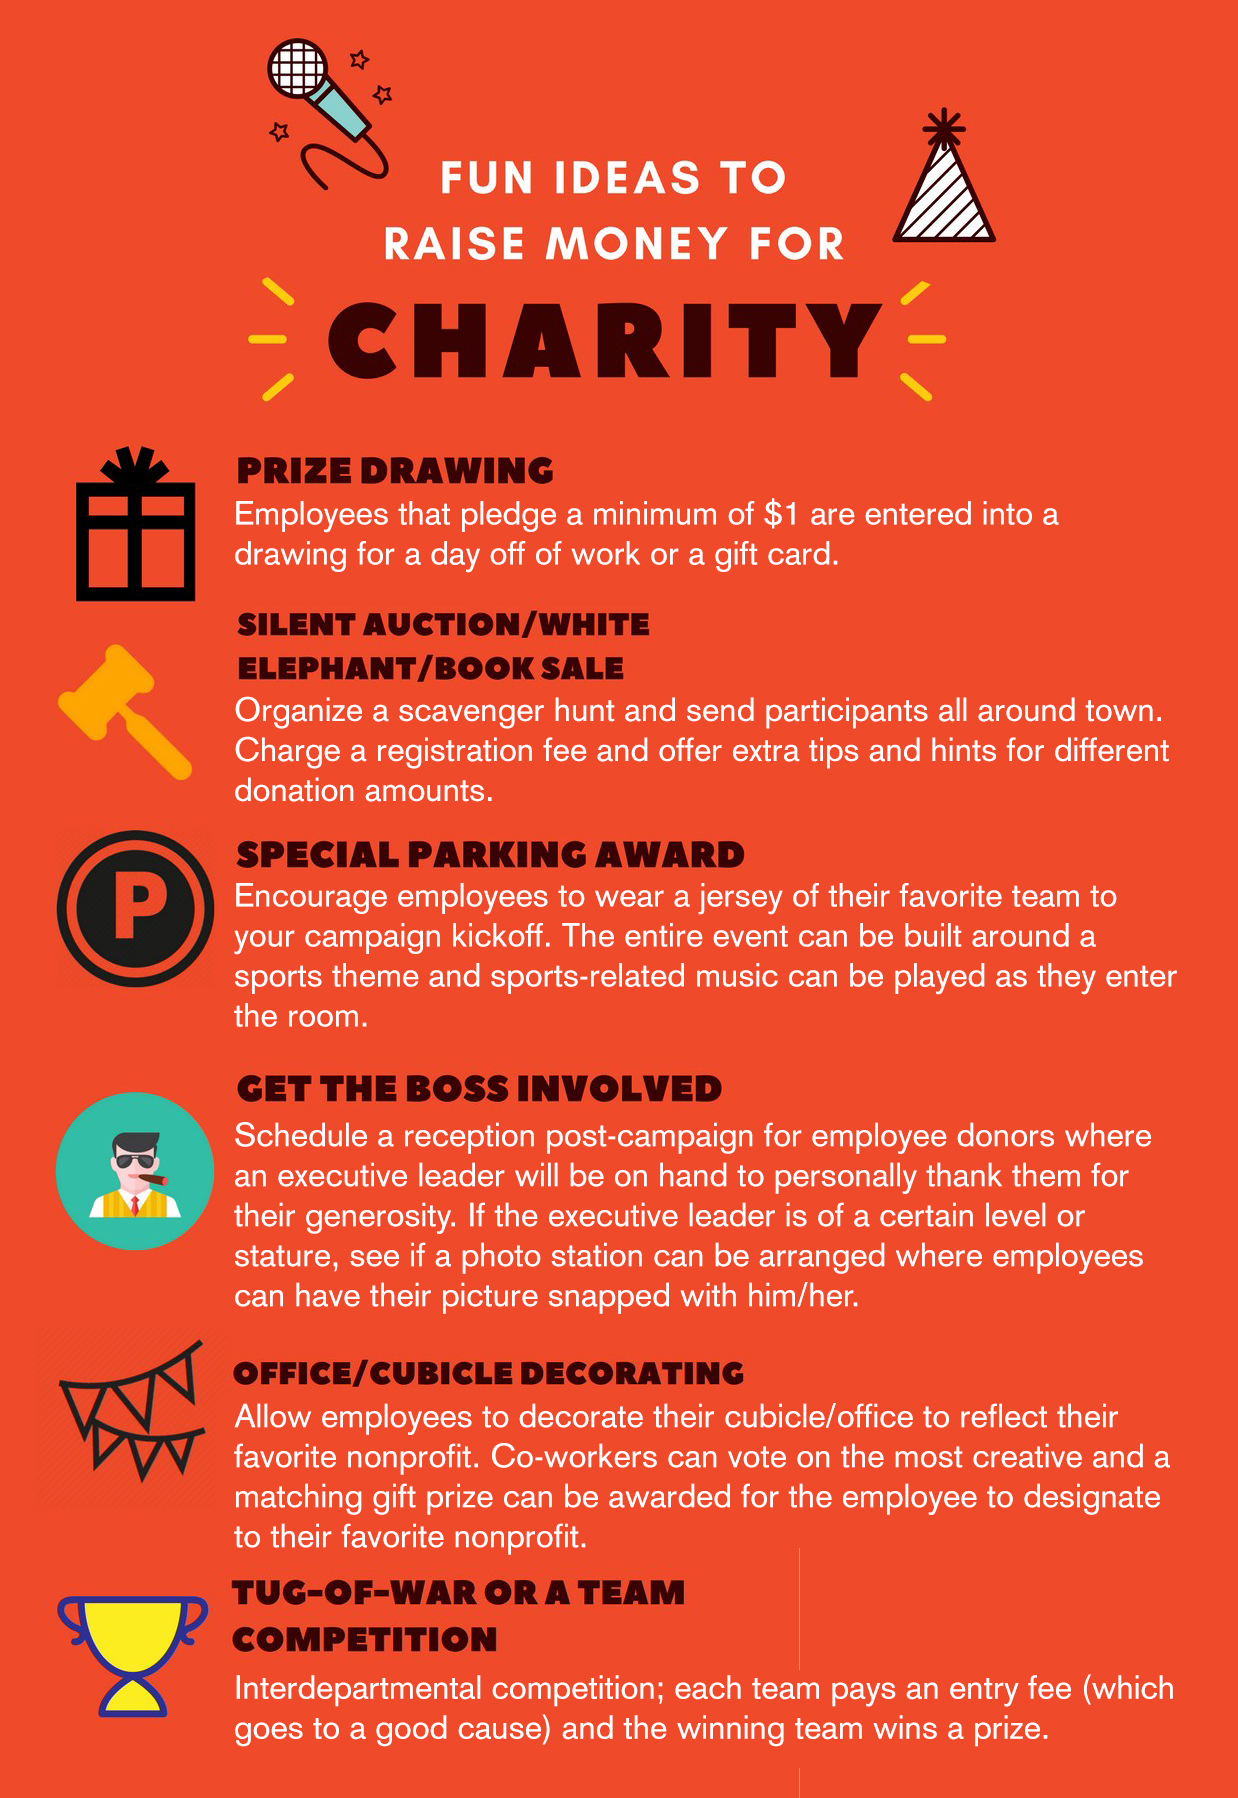 Fun Ideas for Engaging Employees and Raising Money for